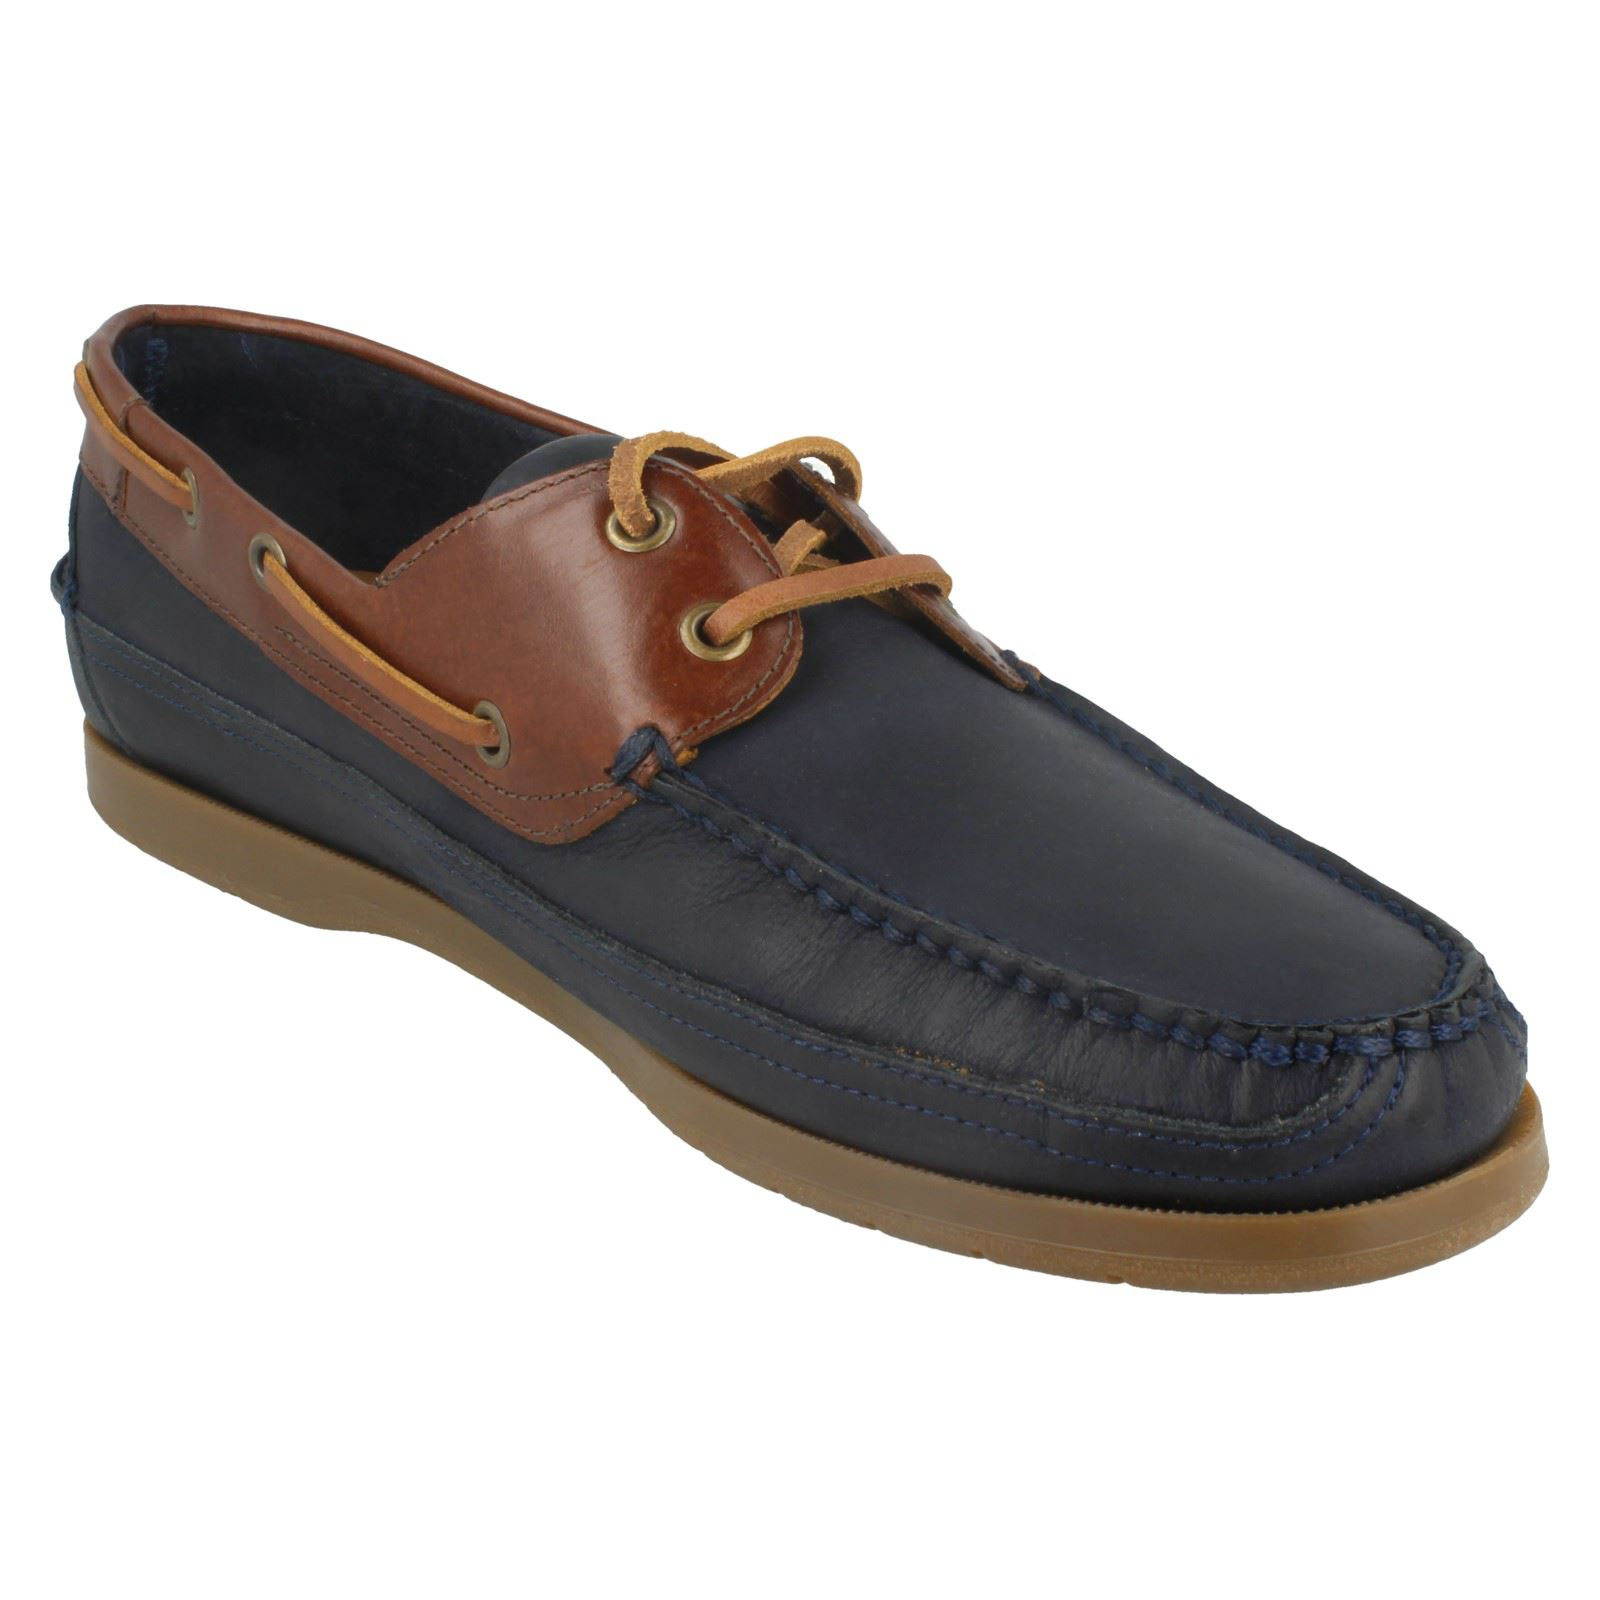 Hombre Hombre Hombre Anatomic Style Viana Lace Up Boat Zapatos 4a43be